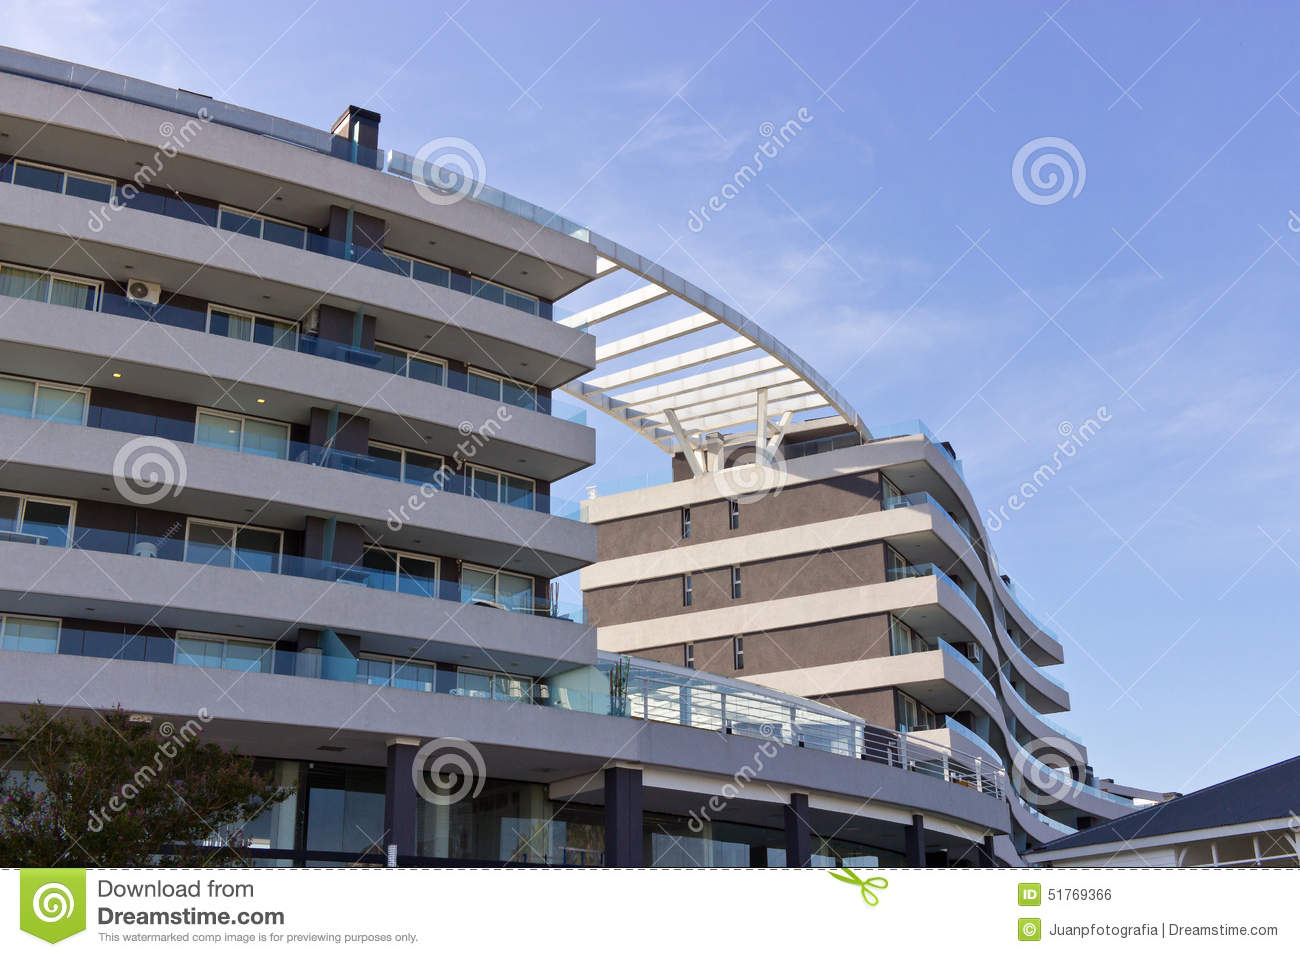 Architecture Curved Building Stock Photo - Image: 51769366